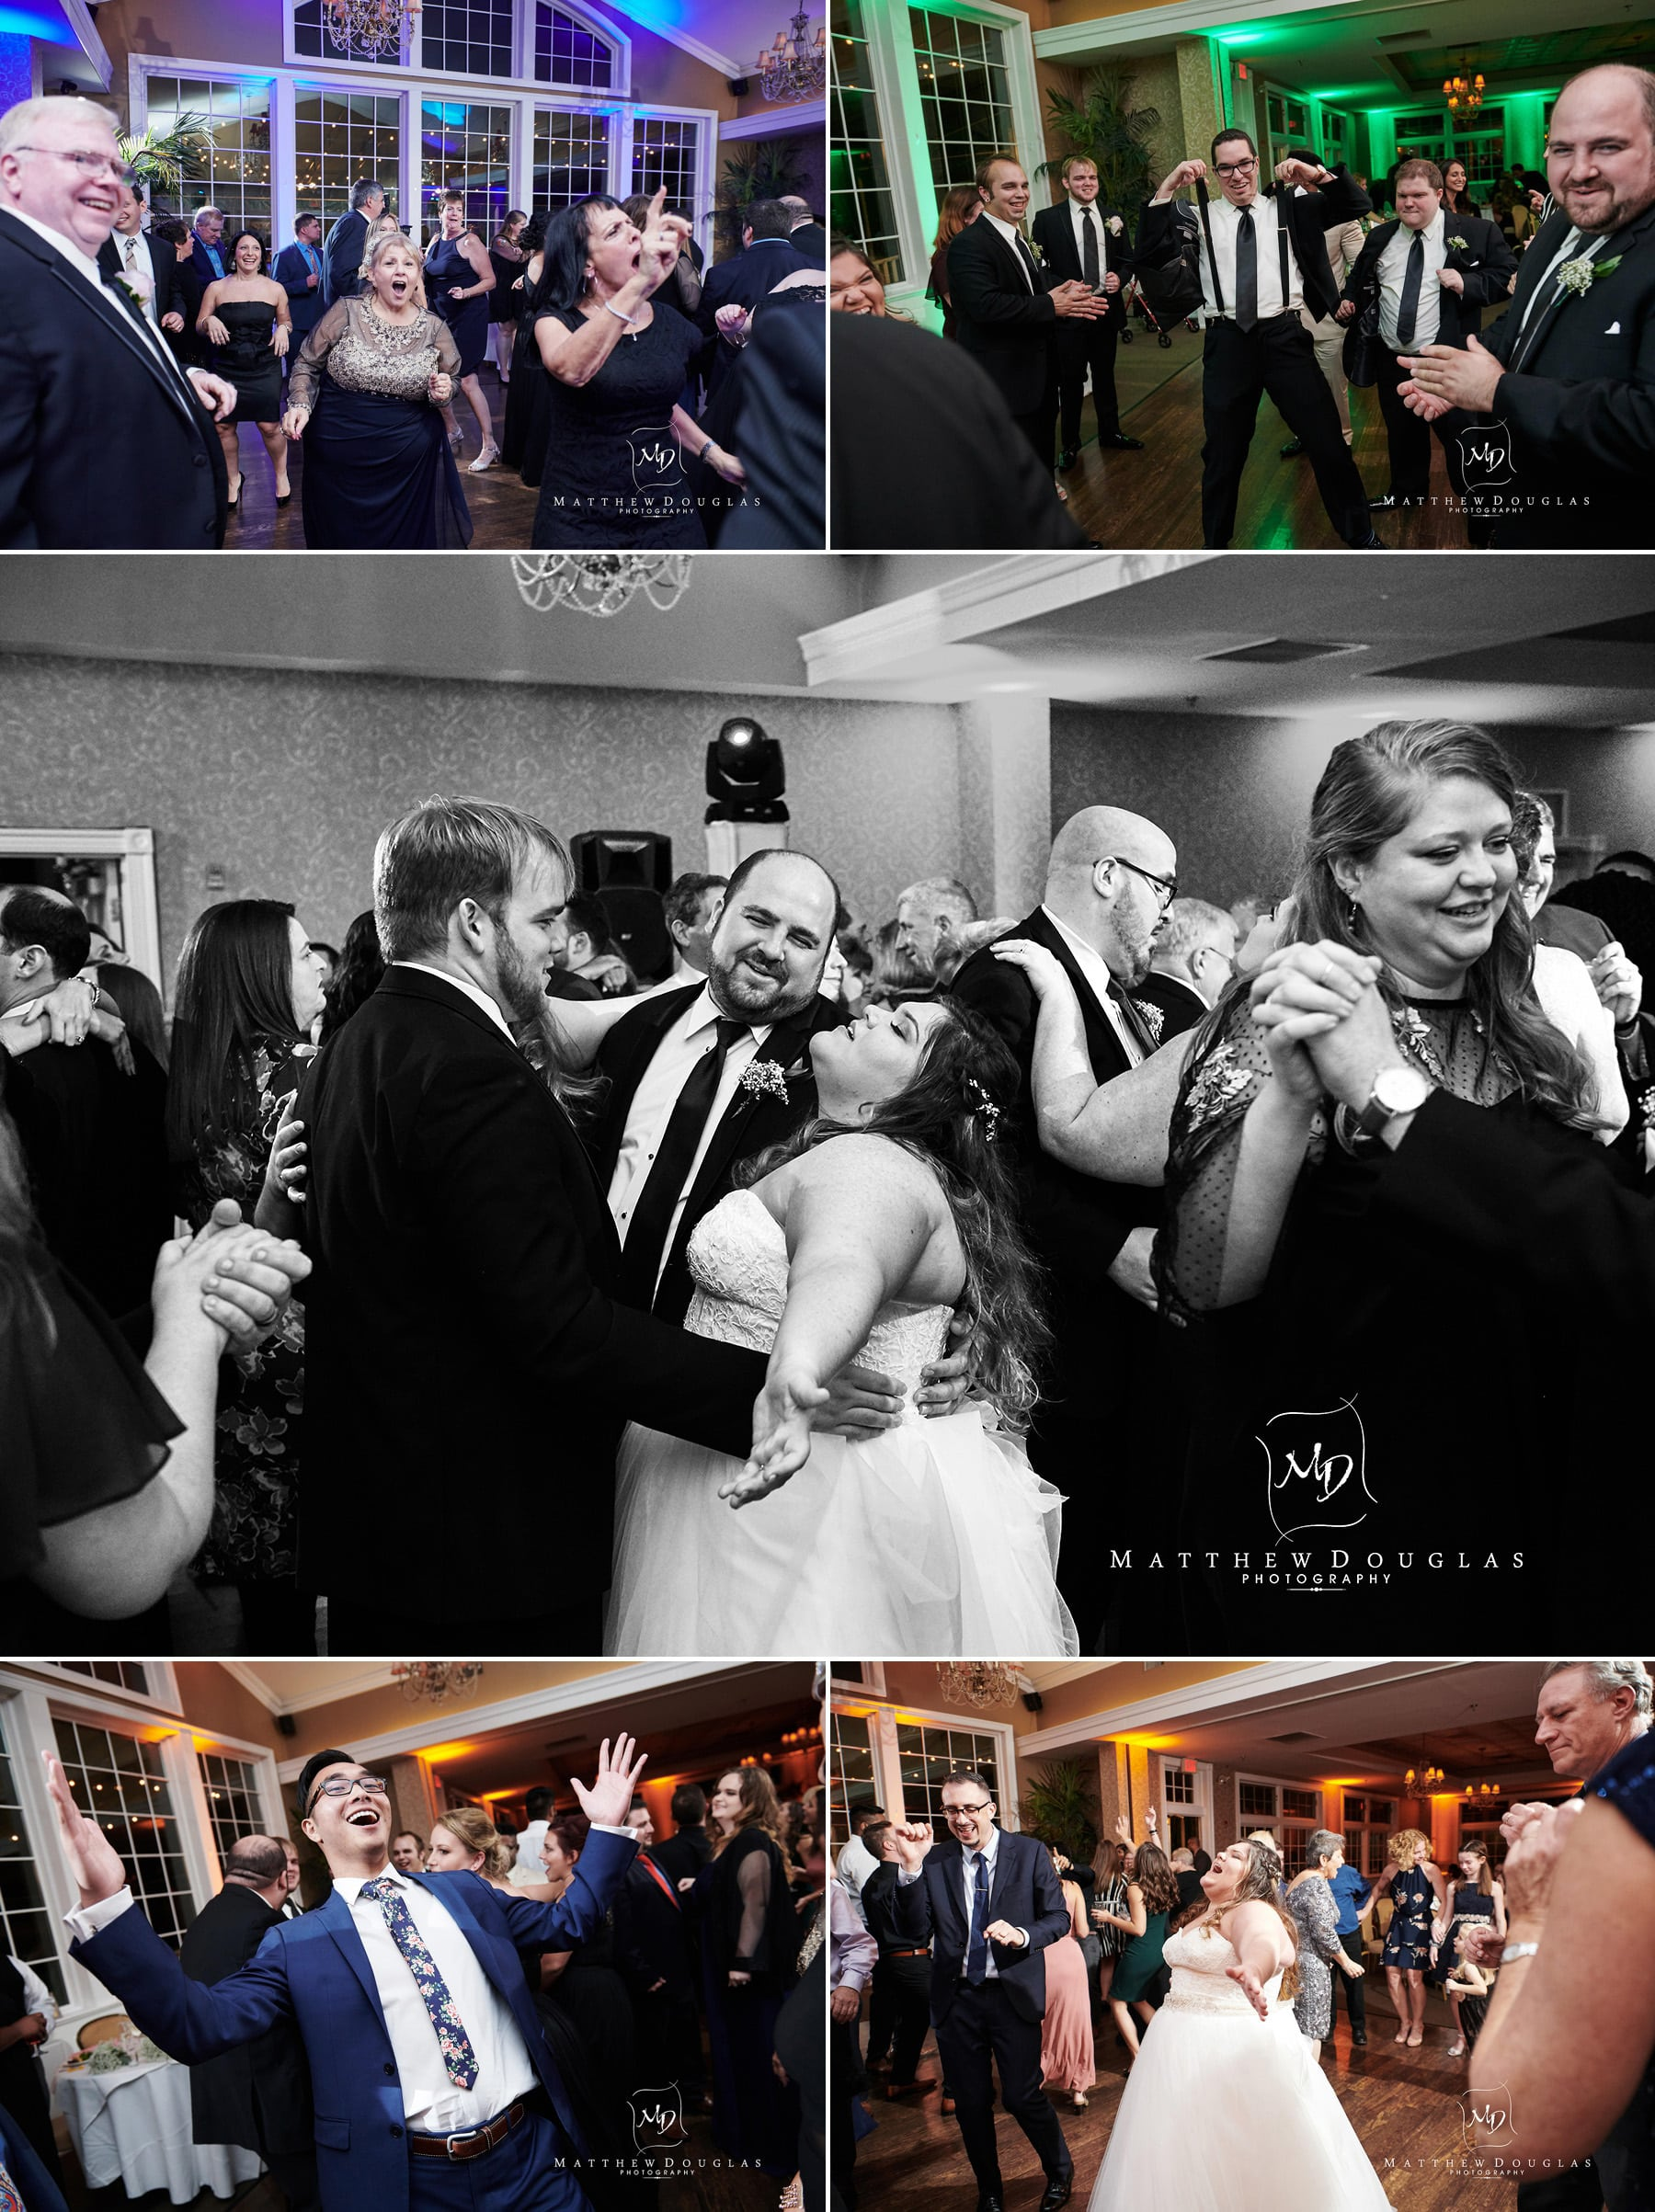 neshanic valley golf course wedding ballroom dancing photos